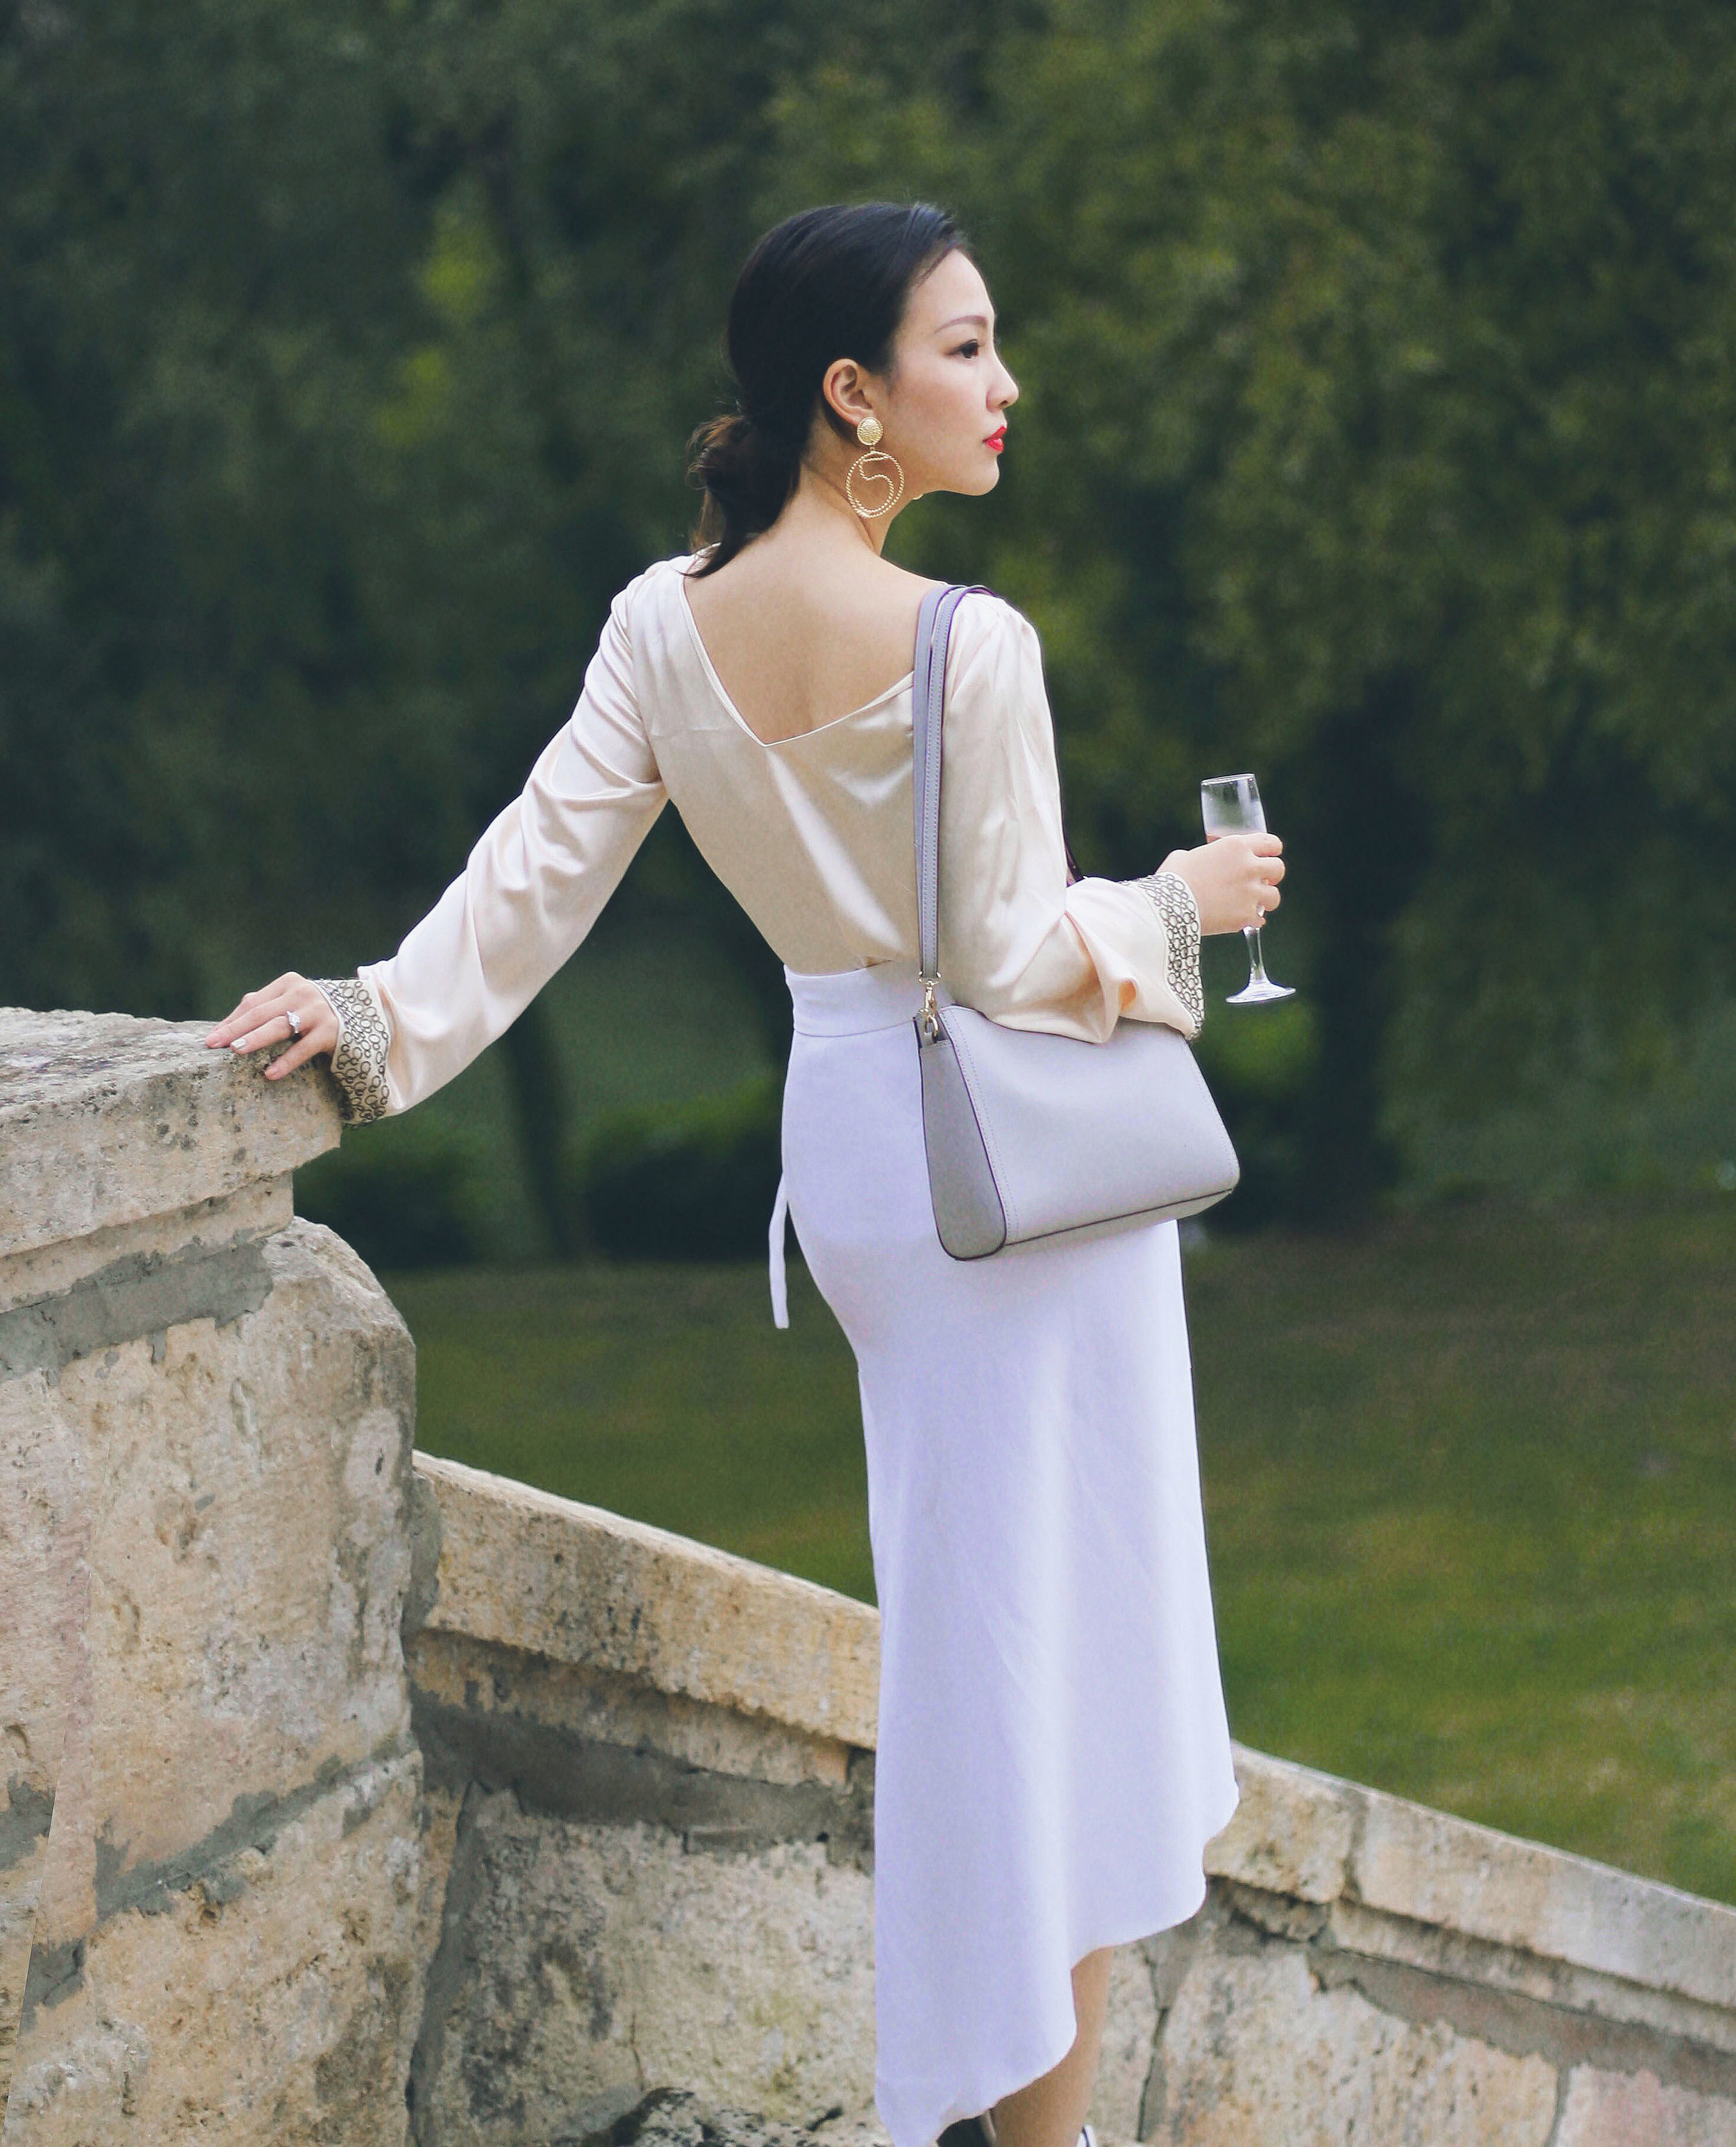 silk top and skirt outfit.JPG